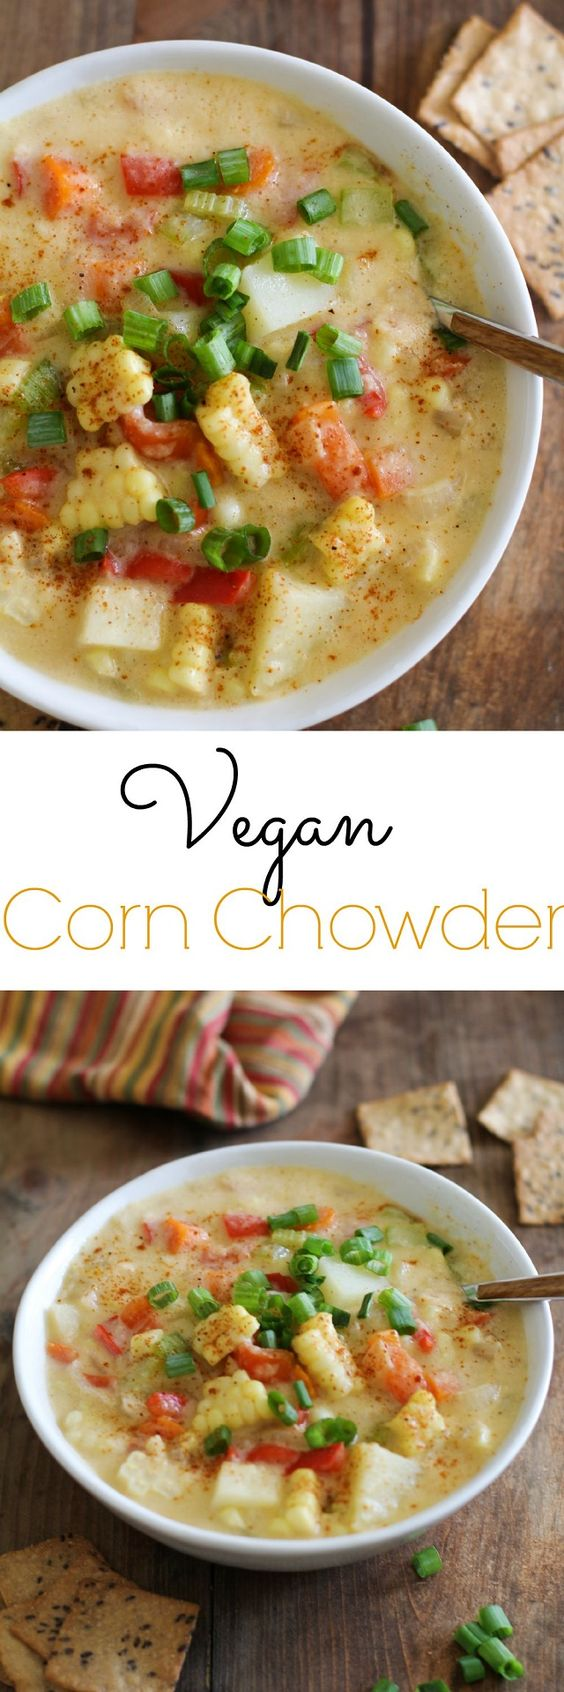 Vegan Corn Chowder - a lightened up, healthy version of the classic soup | TheRoastedRoot.net: